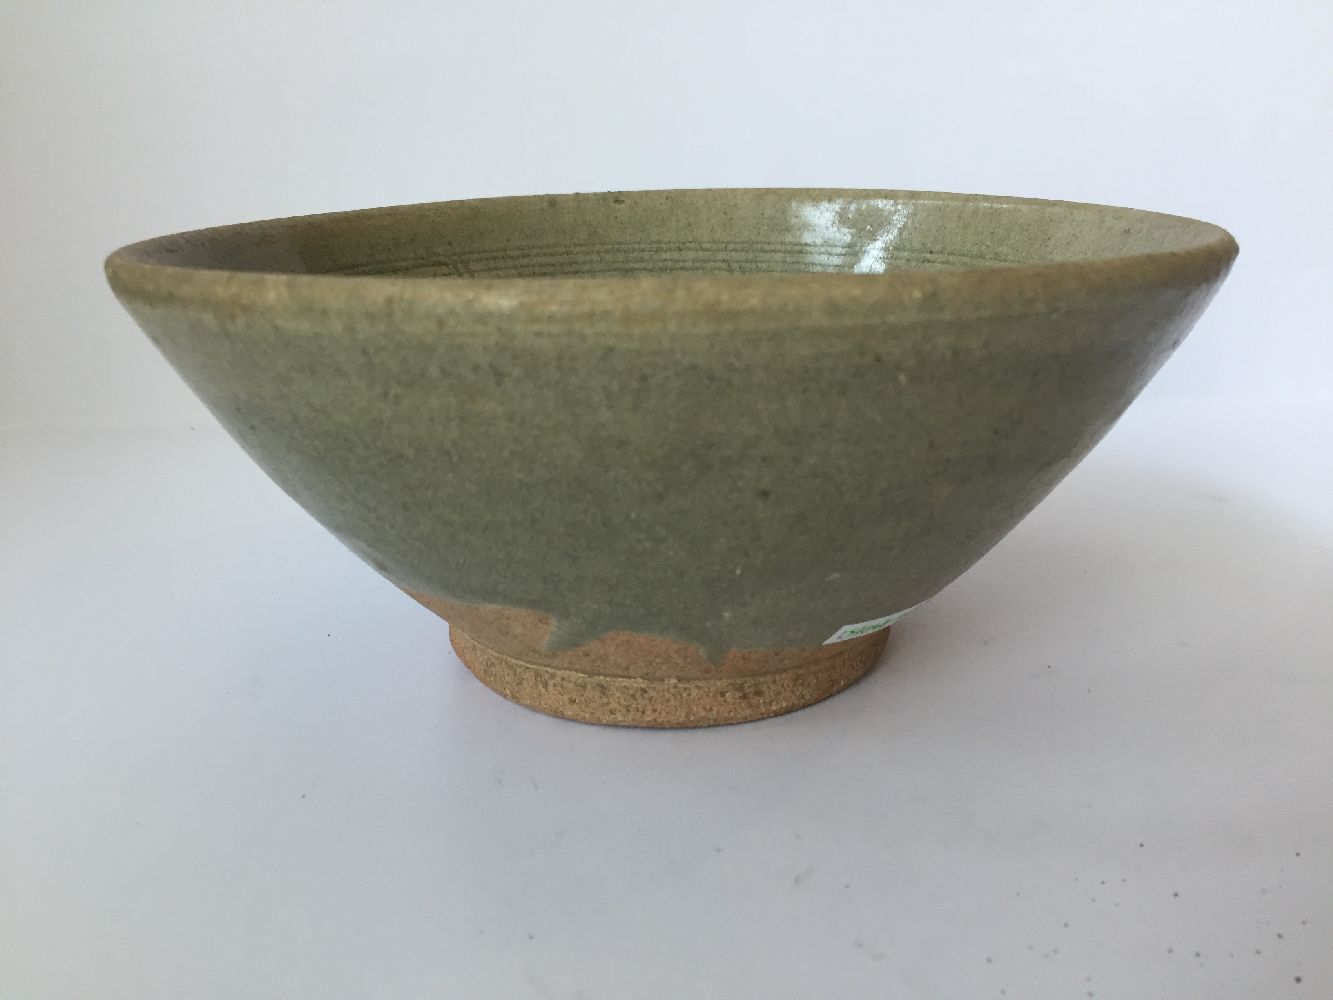 Three Thai Sawankhalok bowls, 15th-16th century, each covered in a celadon glaze, two with fluted - Image 4 of 27